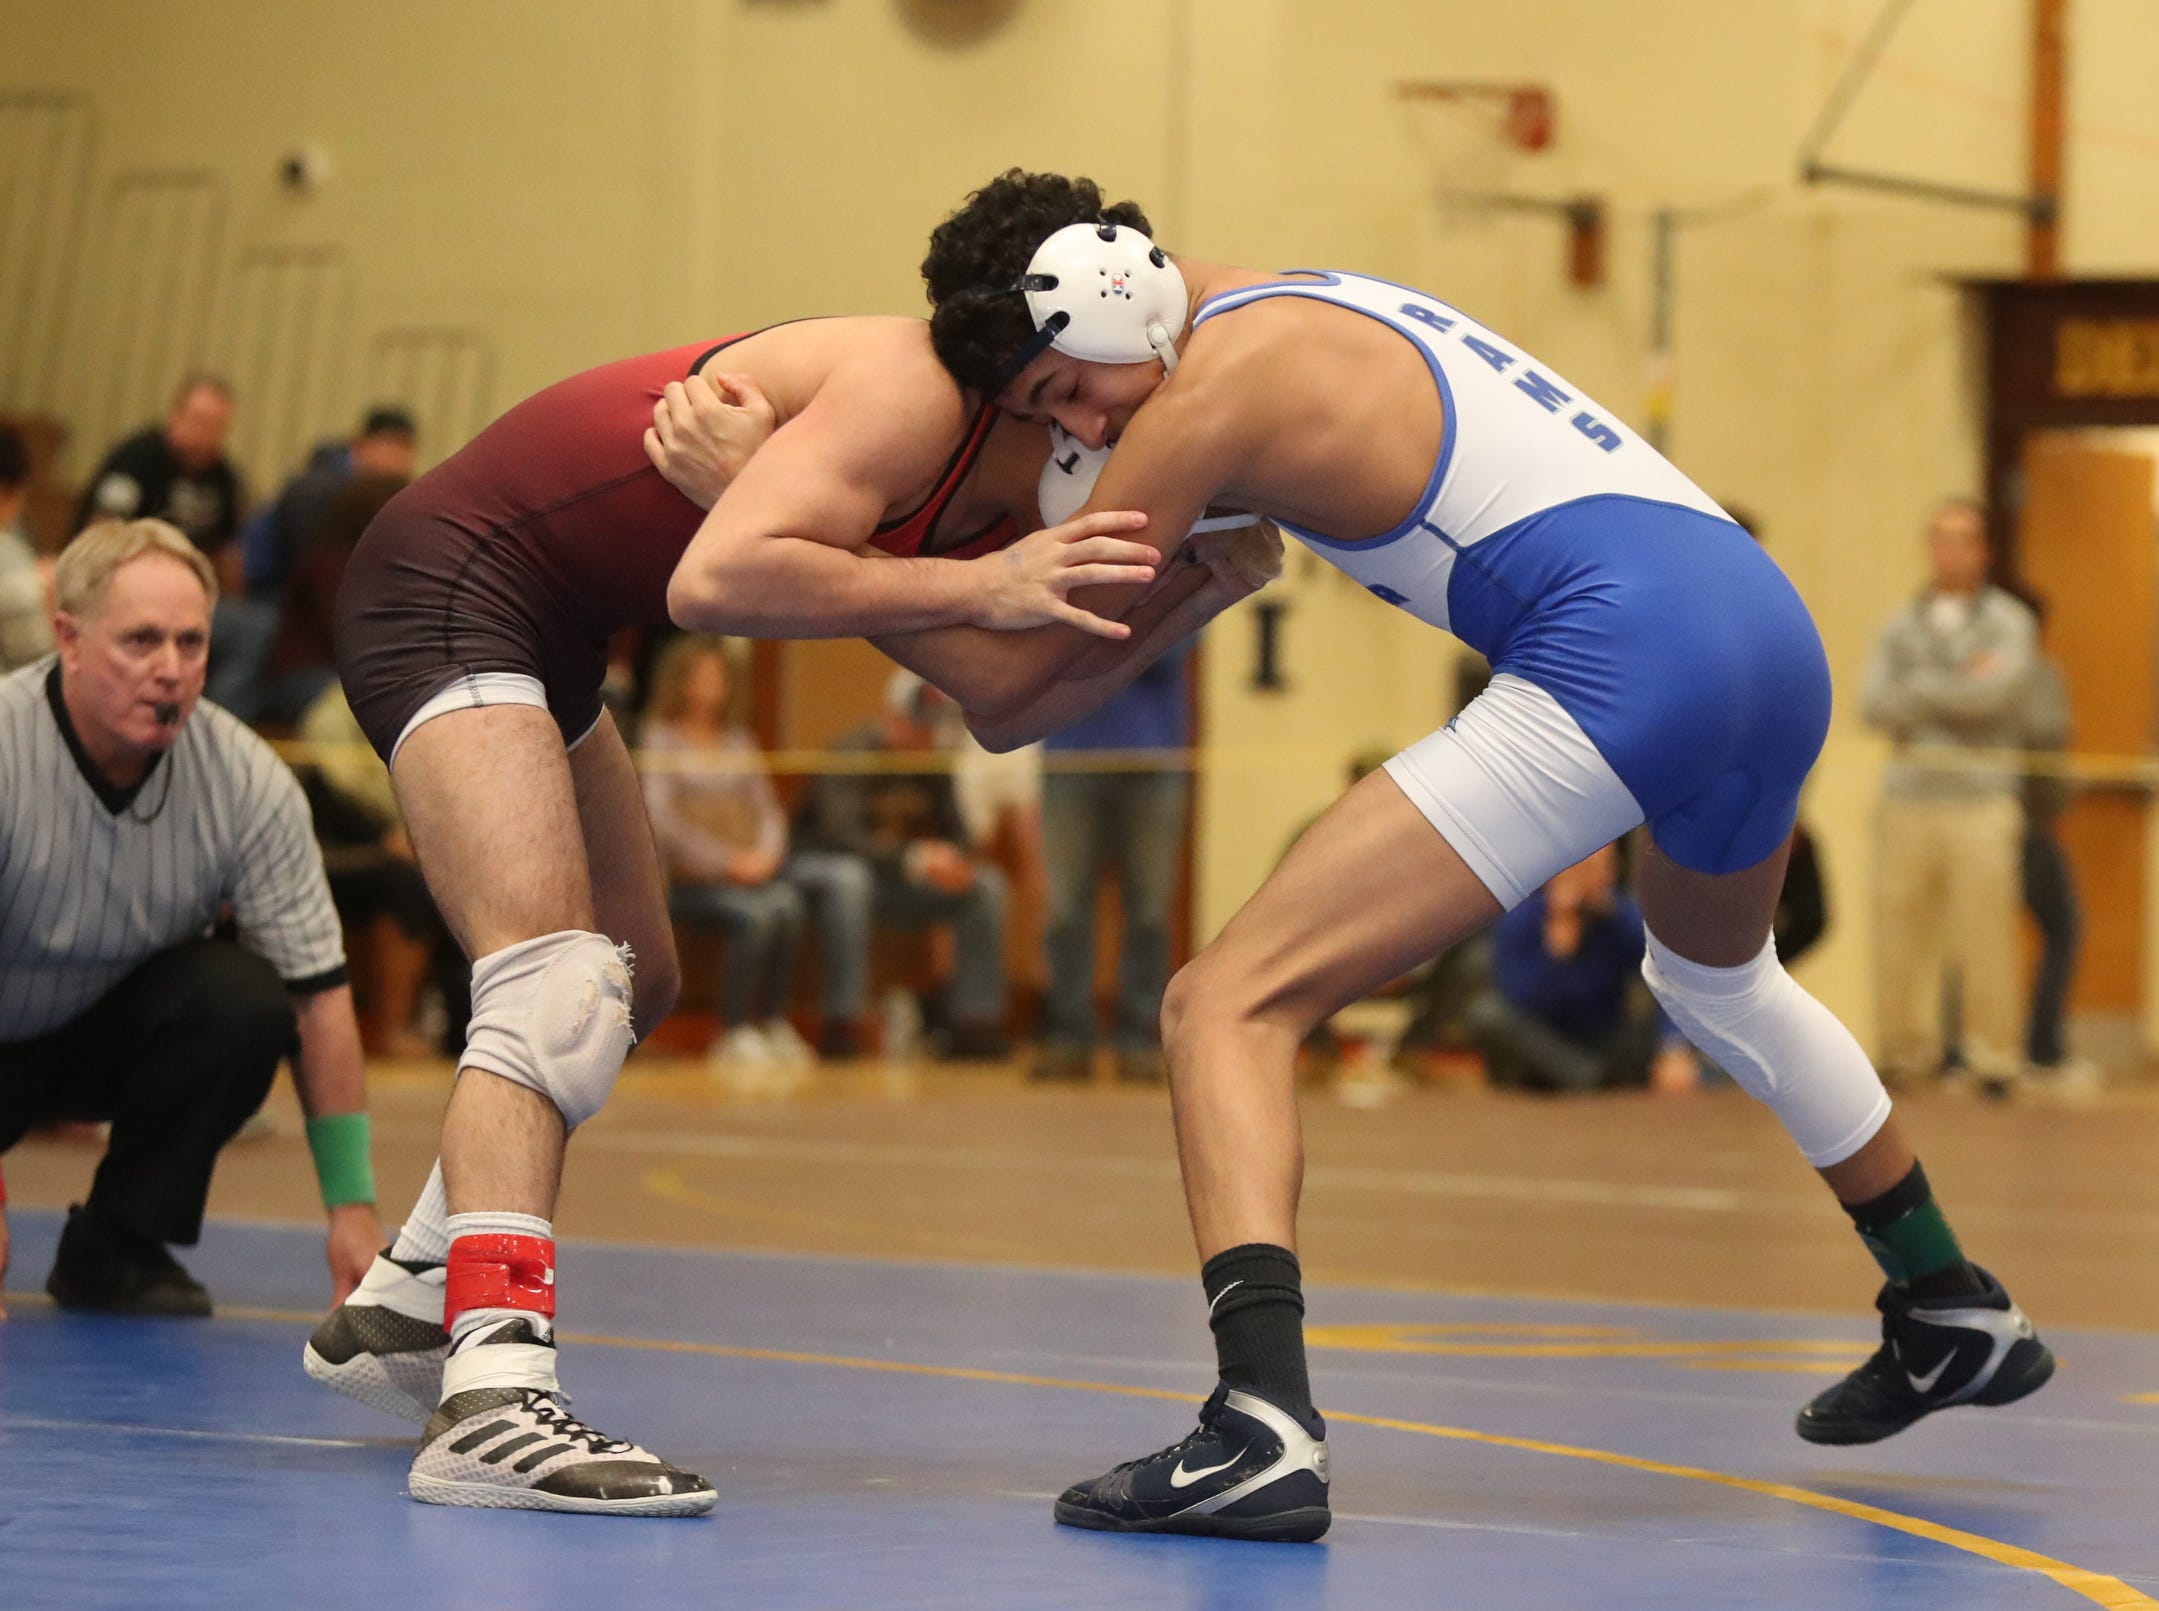 Port Chester's Ivan Garcia defeats Fox Lane's Amos Rivera  in the 120-pound match of the division I wrestling finals at Clarkstown South High School on Sunday, February 10, 2019.